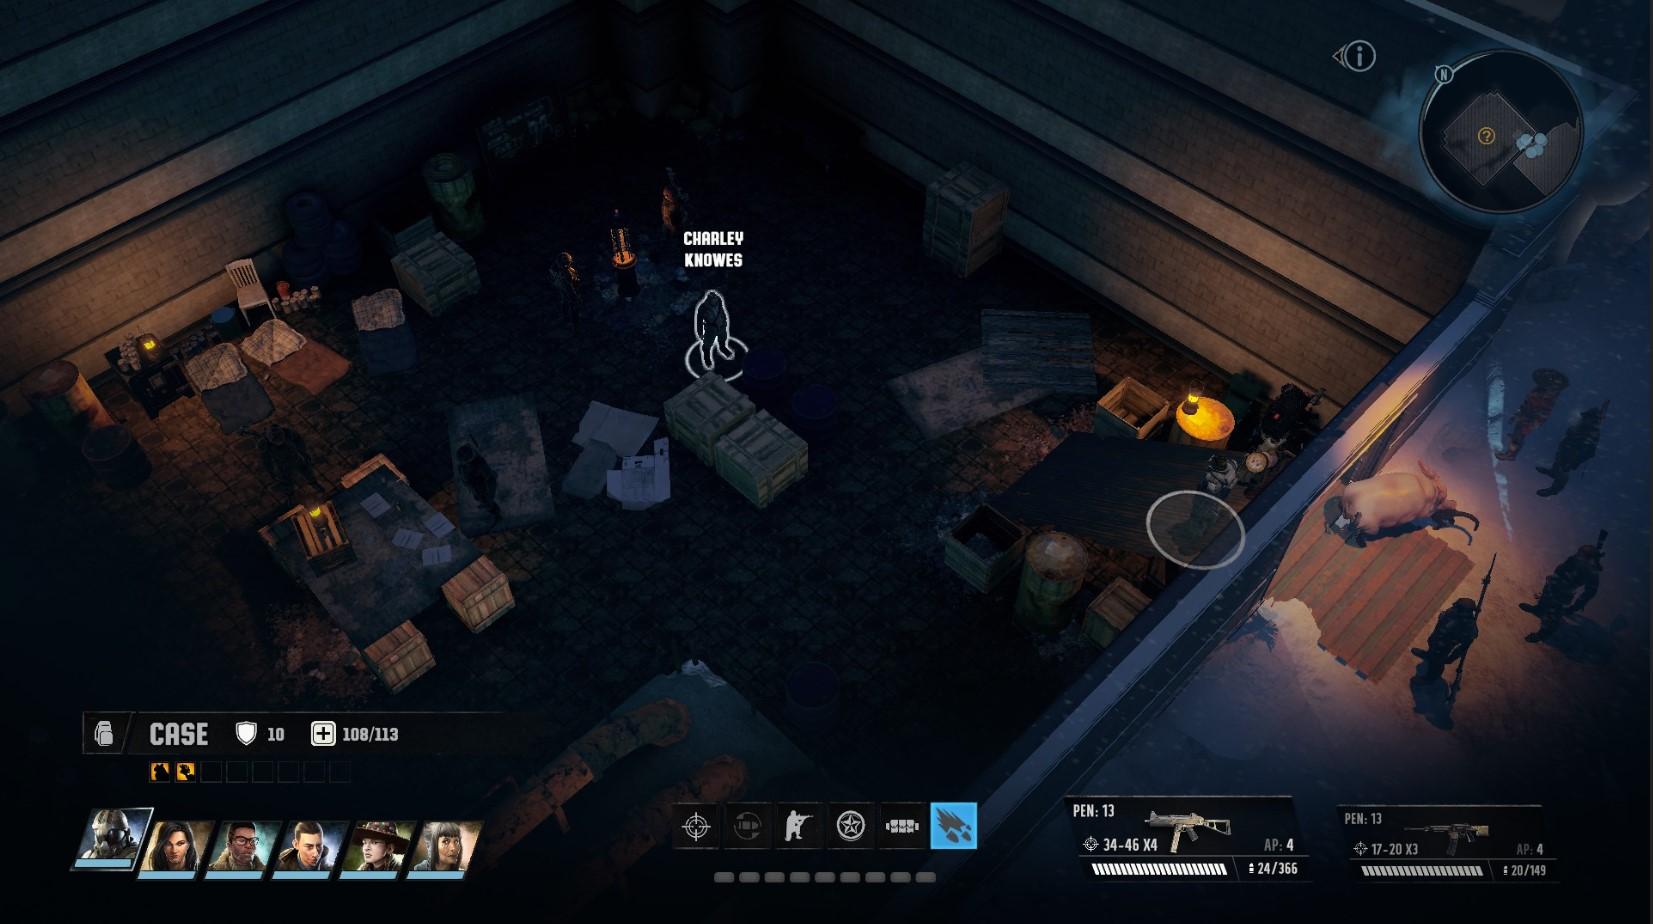 Wasteland 3 Very Hostile Takeover Quest – Side with Charley Knowes or the Monster Army? thumbnail